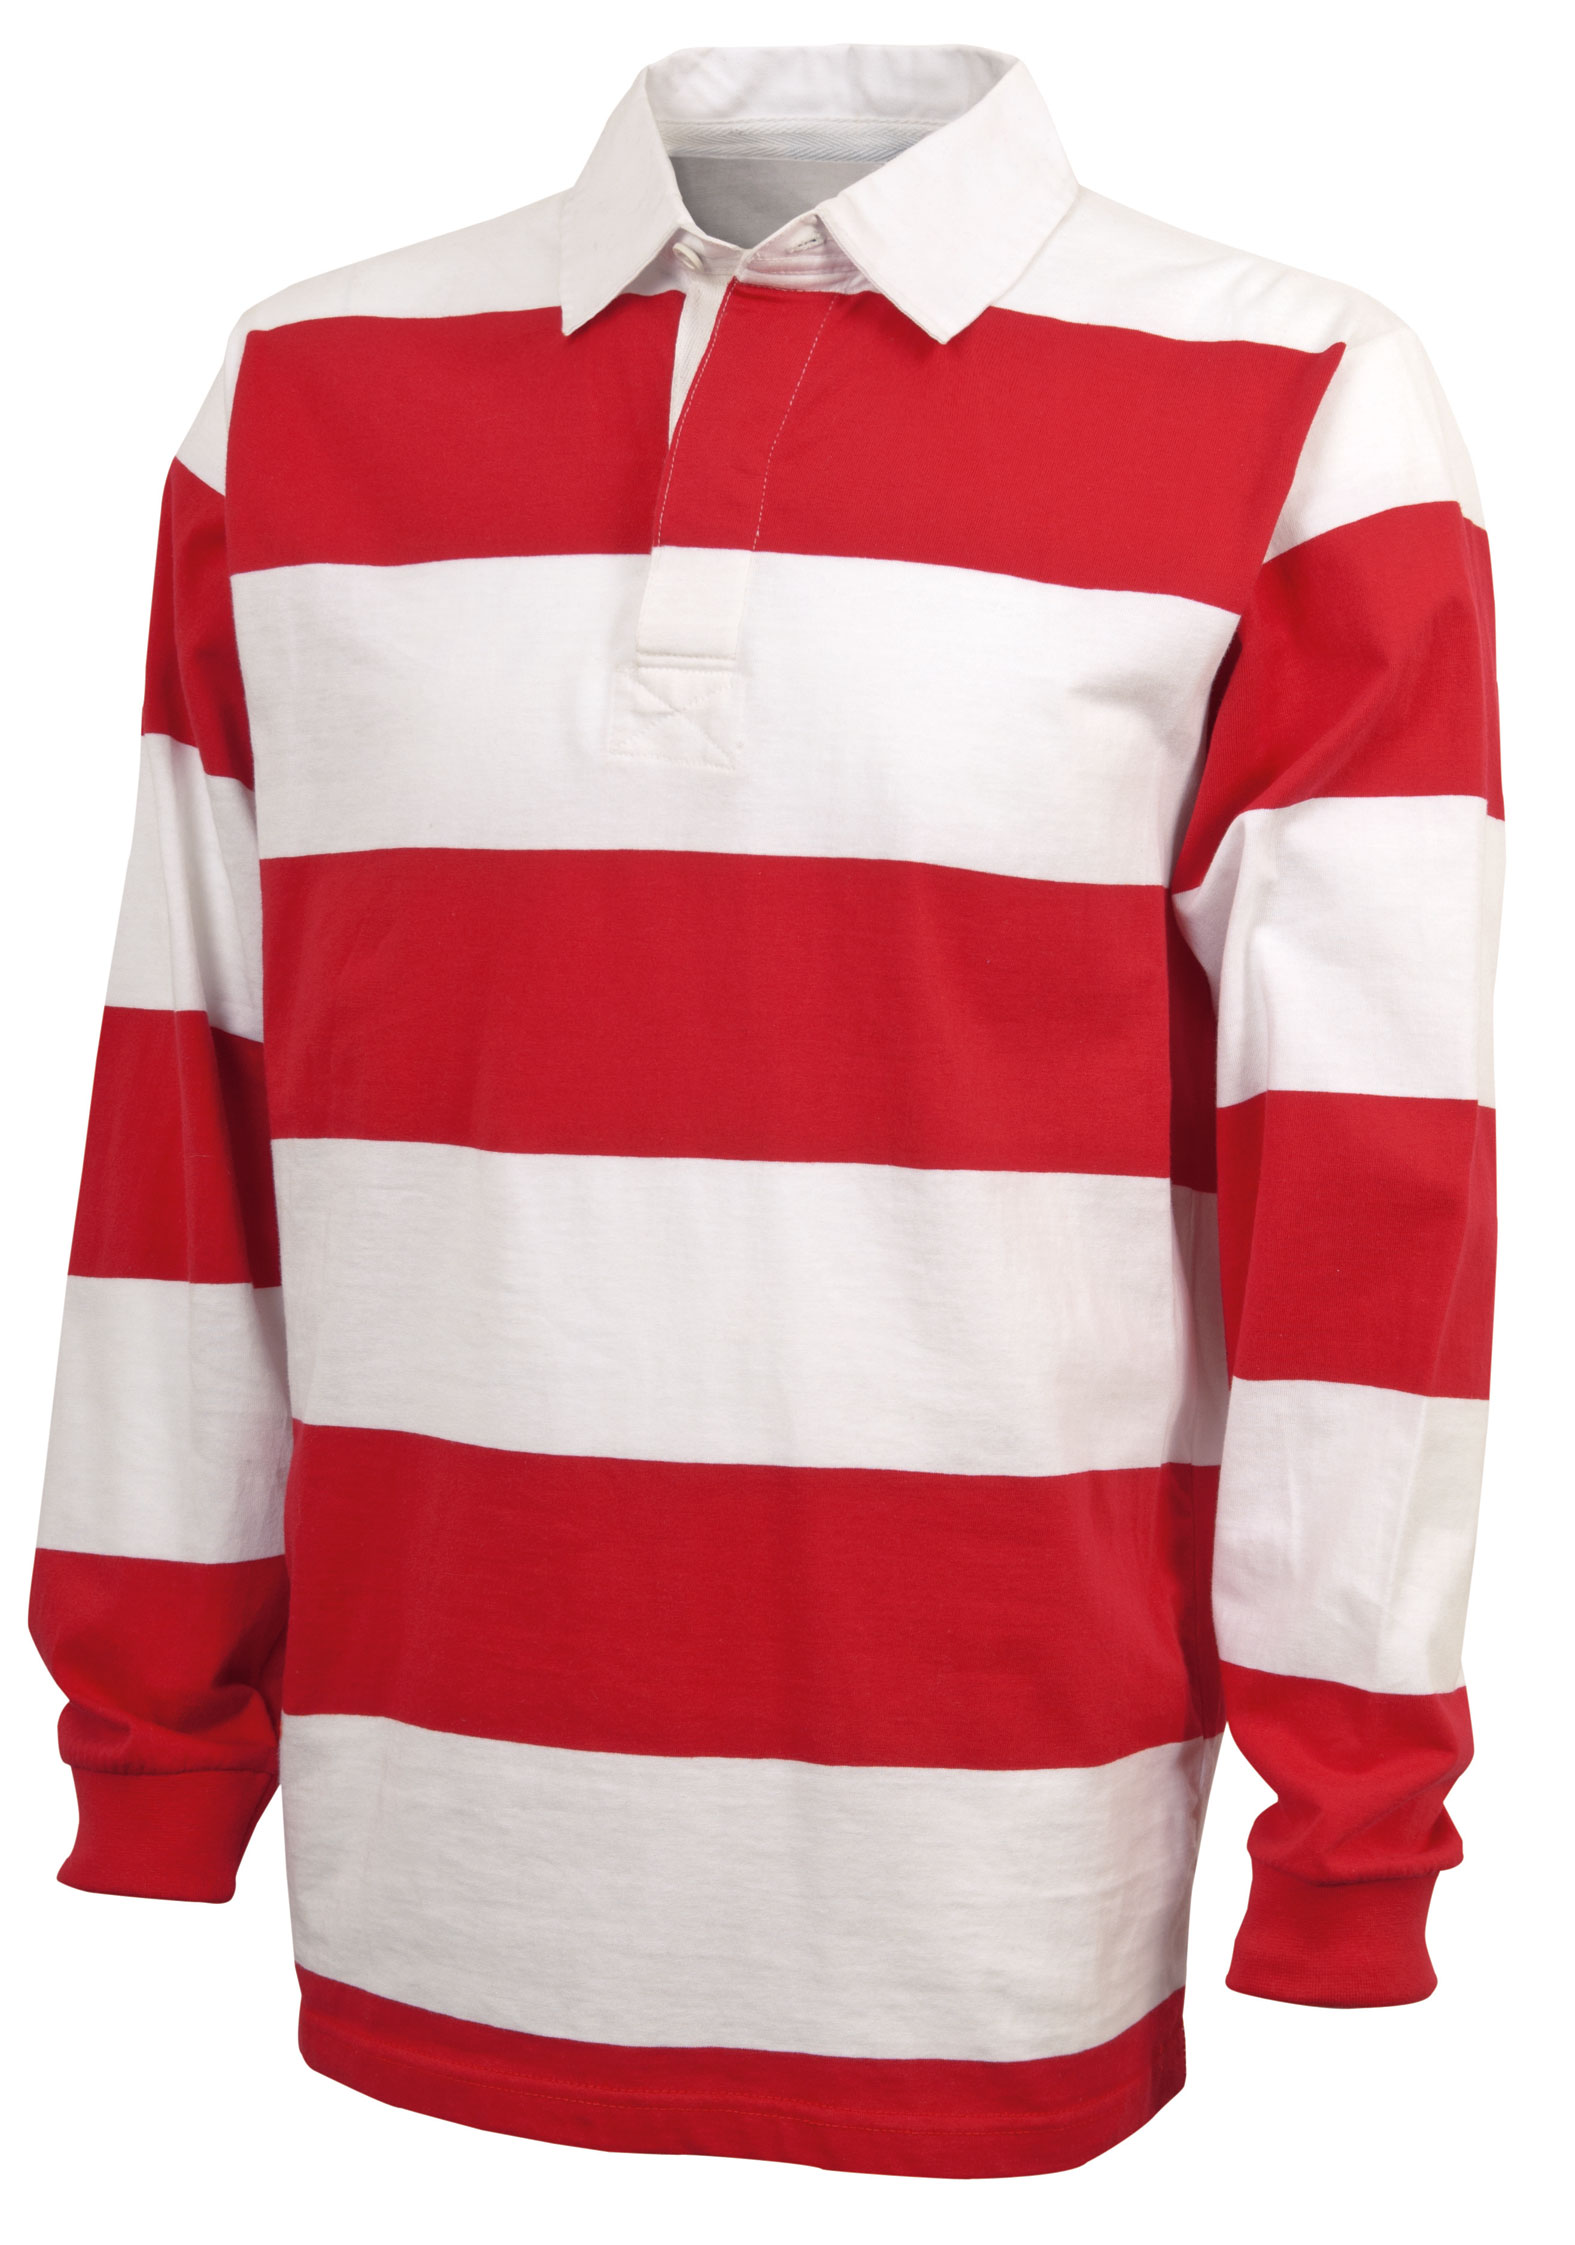 Adult Classic Rugby Shirt by Charles River Apparel